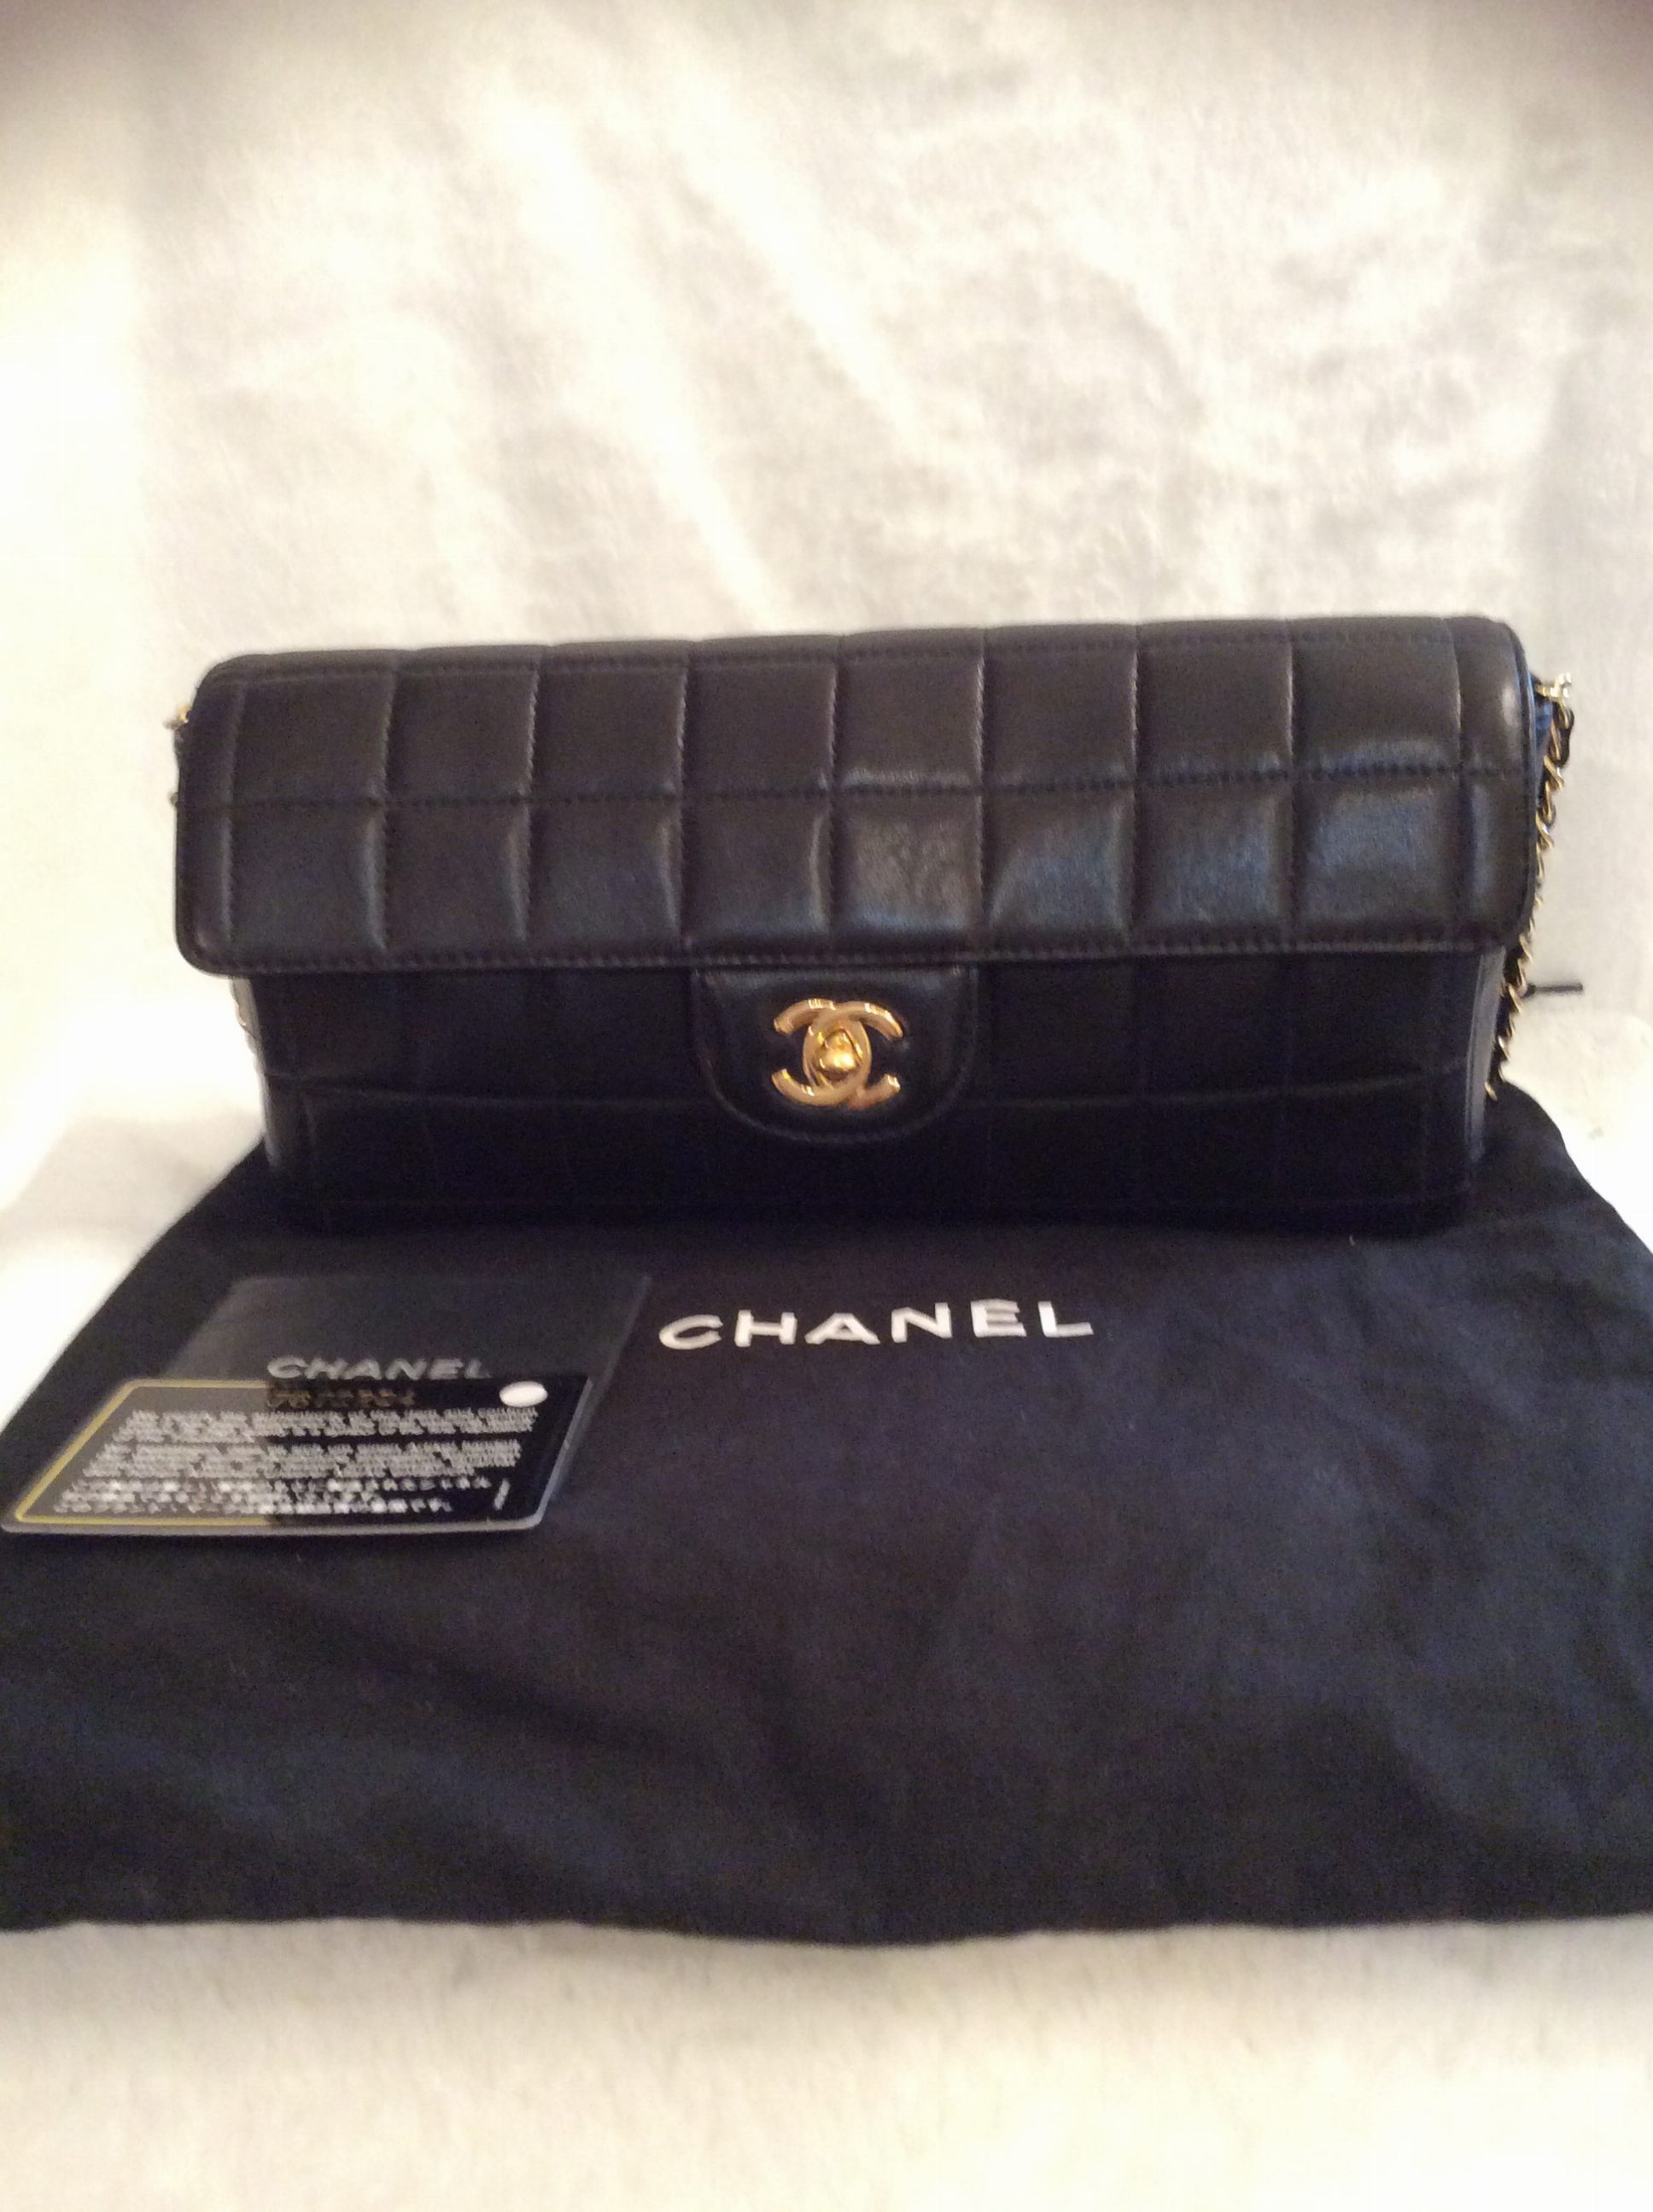 127996023ab4 Chanel Handbag 2.55 - Foto Handbag All Collections Salonagafiya.Com